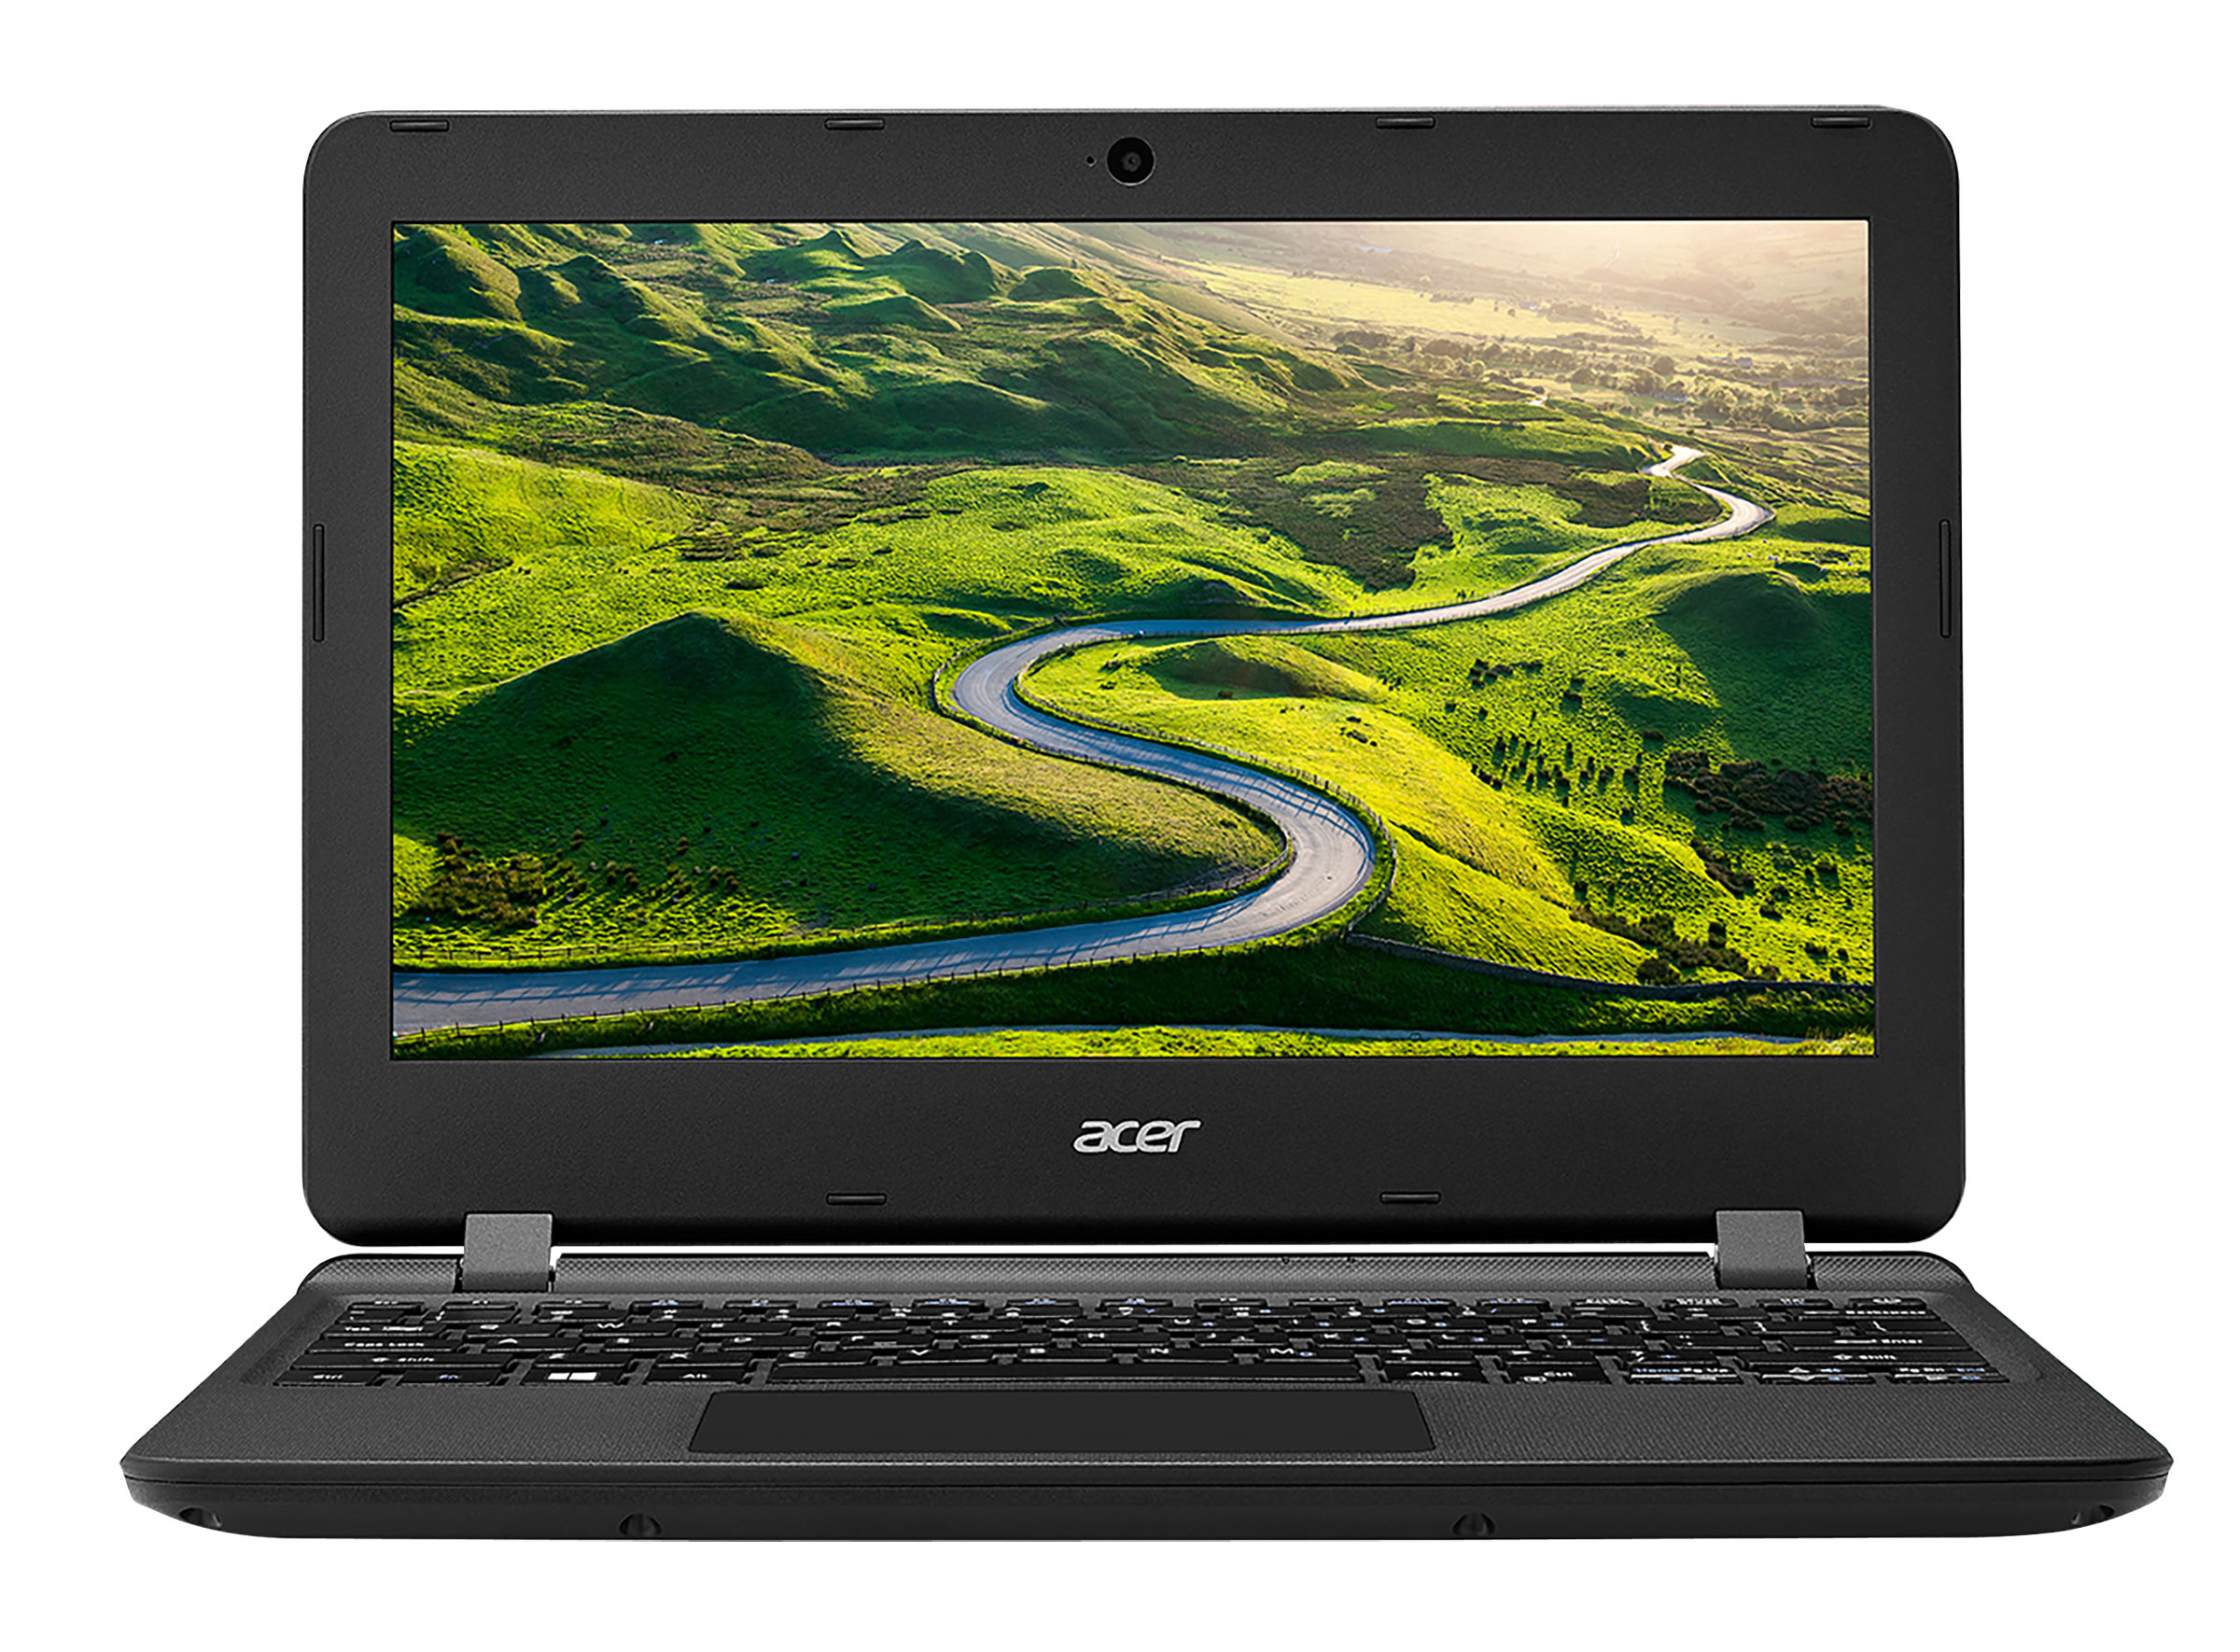 Acer Aspire ES 11 ES1132C37M Intel Celeron 32GB SSD 4GB RAM 116 Notebook